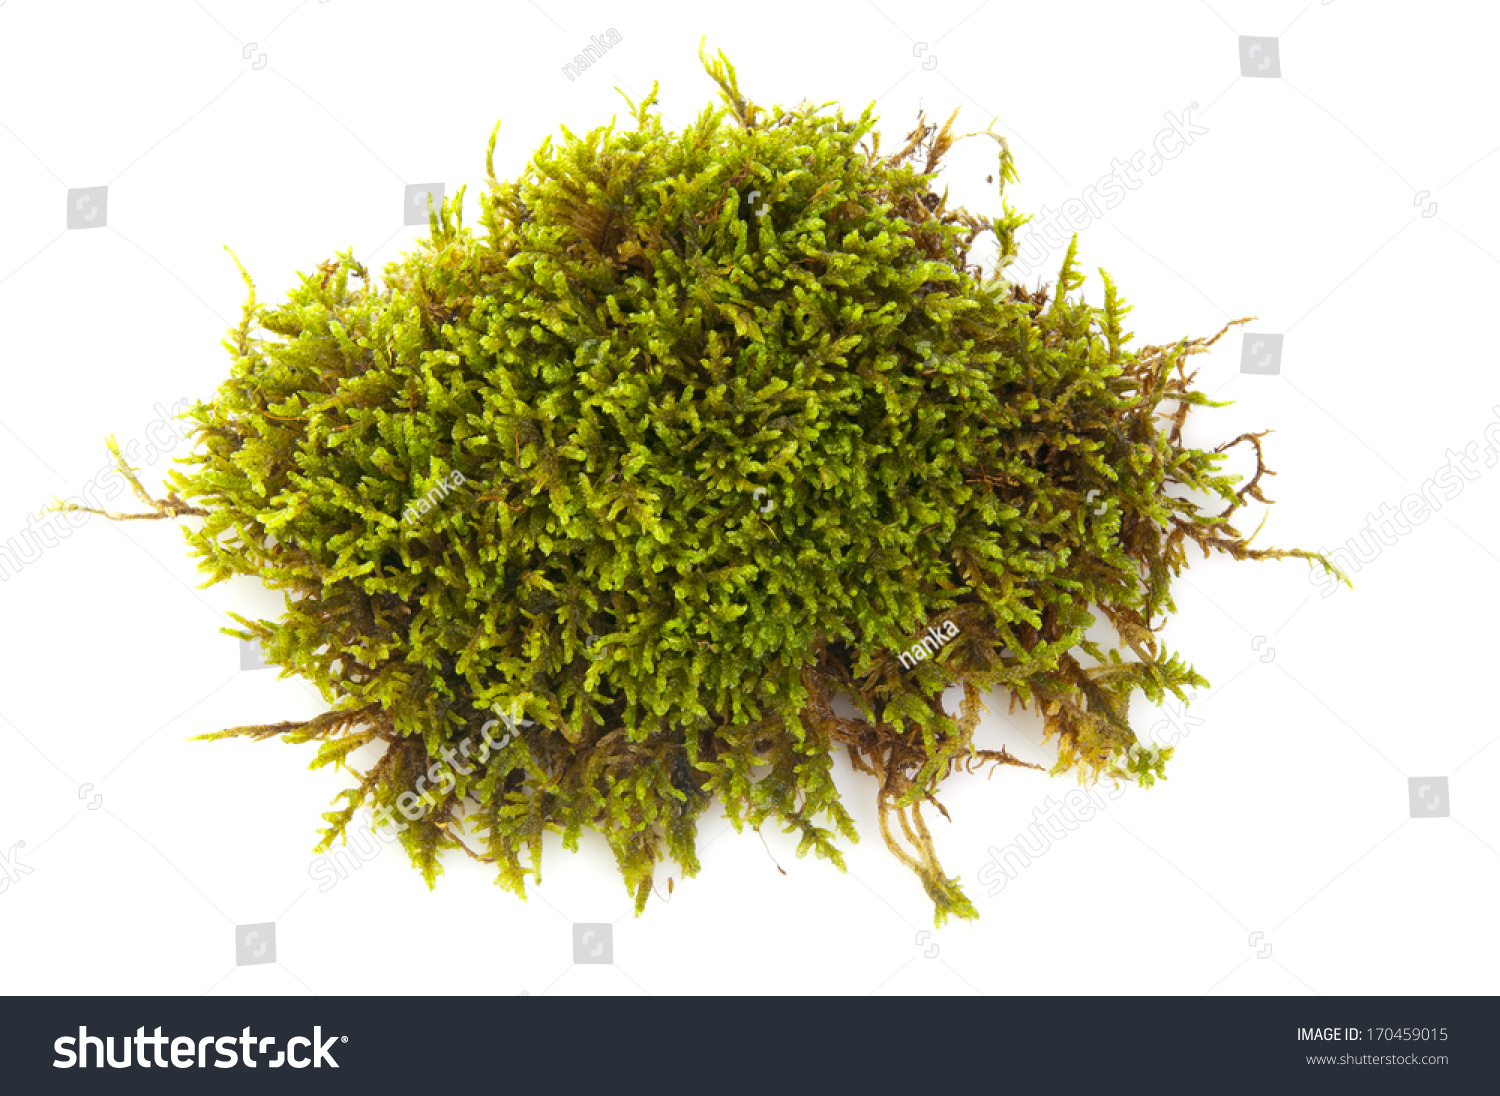 determination of green moss bryophyta extract Moss (bryophyte) mediated synthesis and characterization of silver nanoparticles from campylopus flexuosus (hedw) bird 1avimala, 1ssahaya sathish, 1tthamizharasi, 1rpalani.